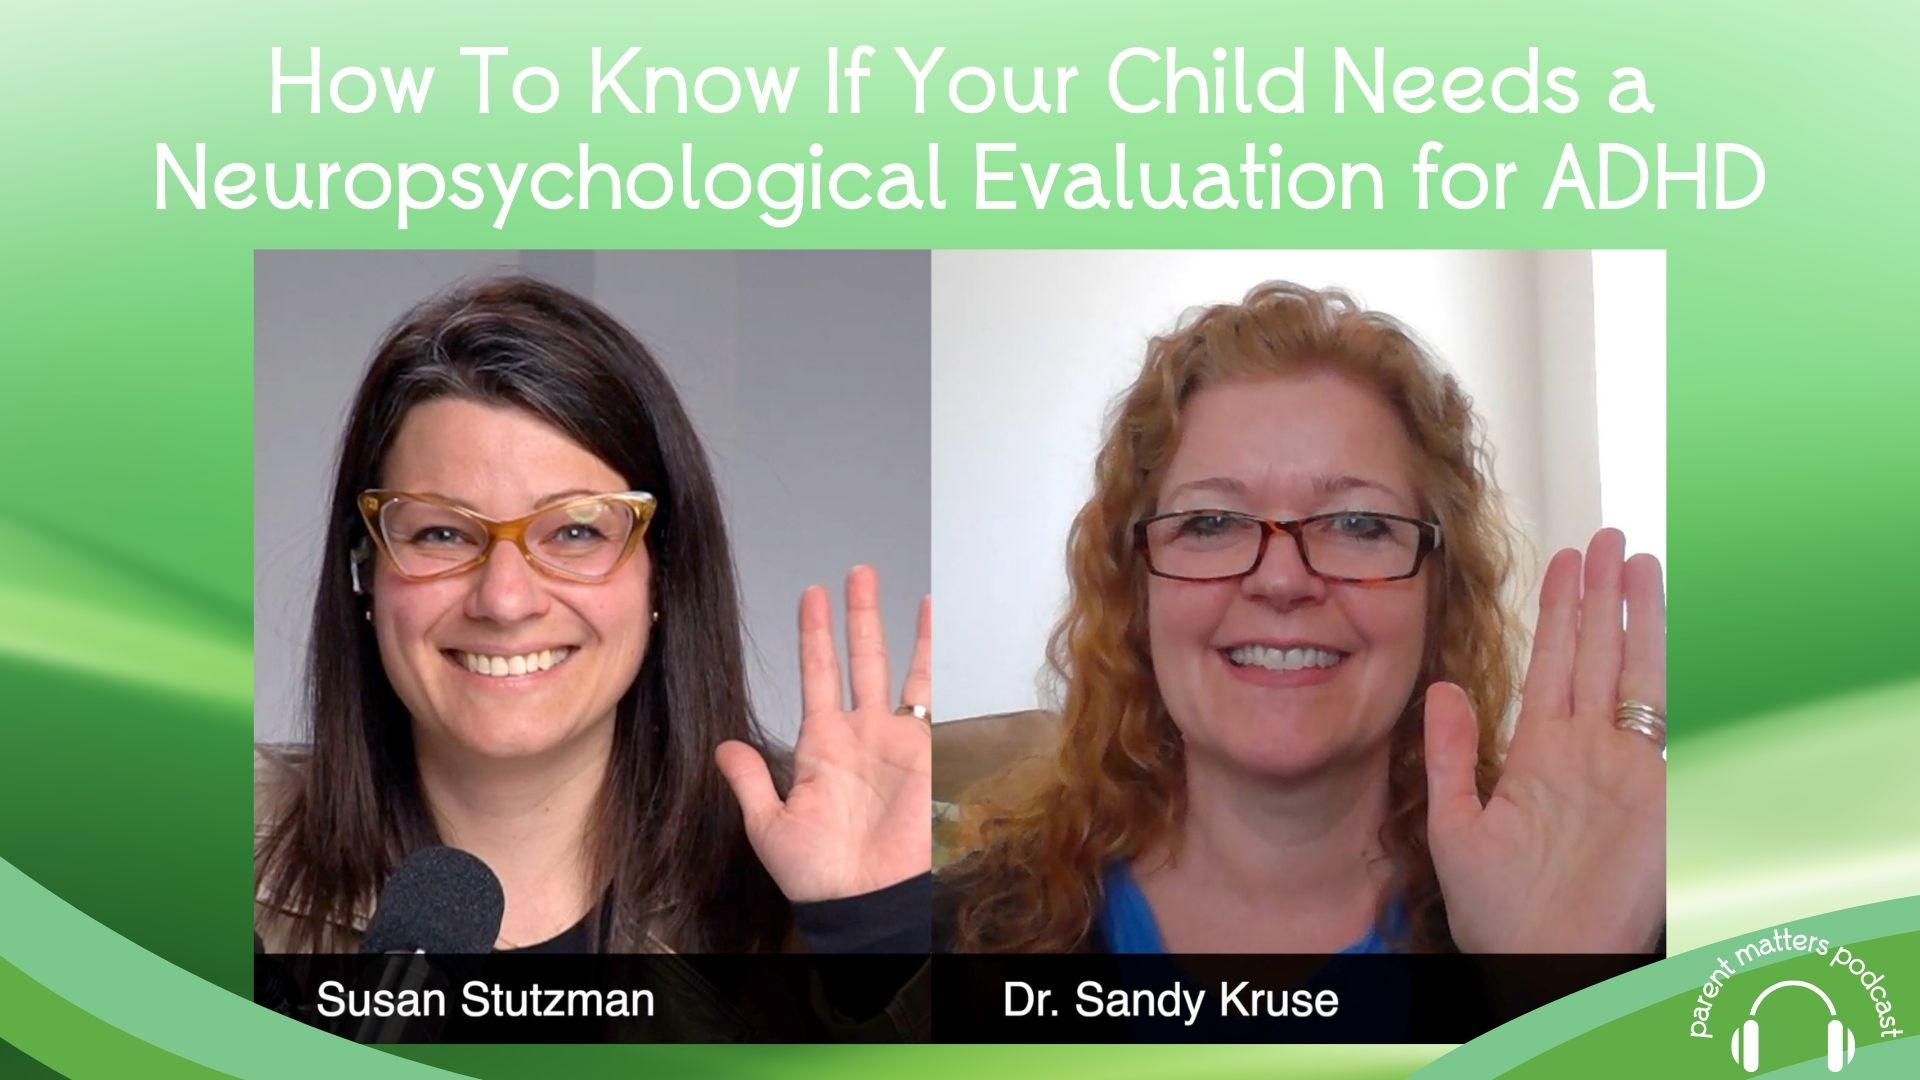 How to Know When Your Child Needs a Neuropsychological Evaluation for ADHD